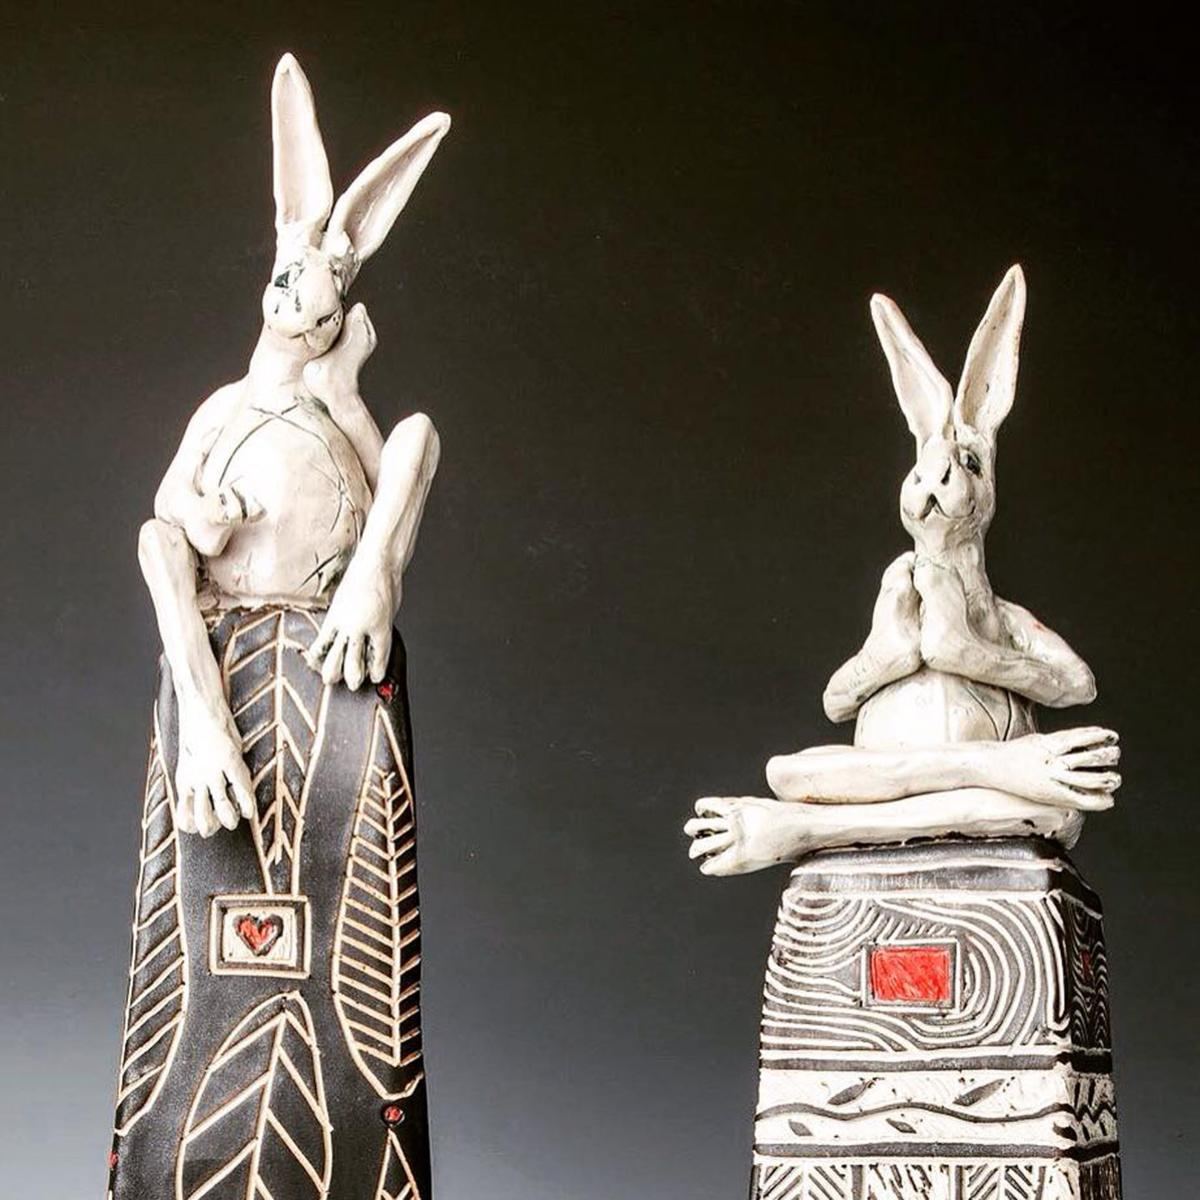 Whimsical sculpture of rabbits by Reiko Cunningham-Uchytil